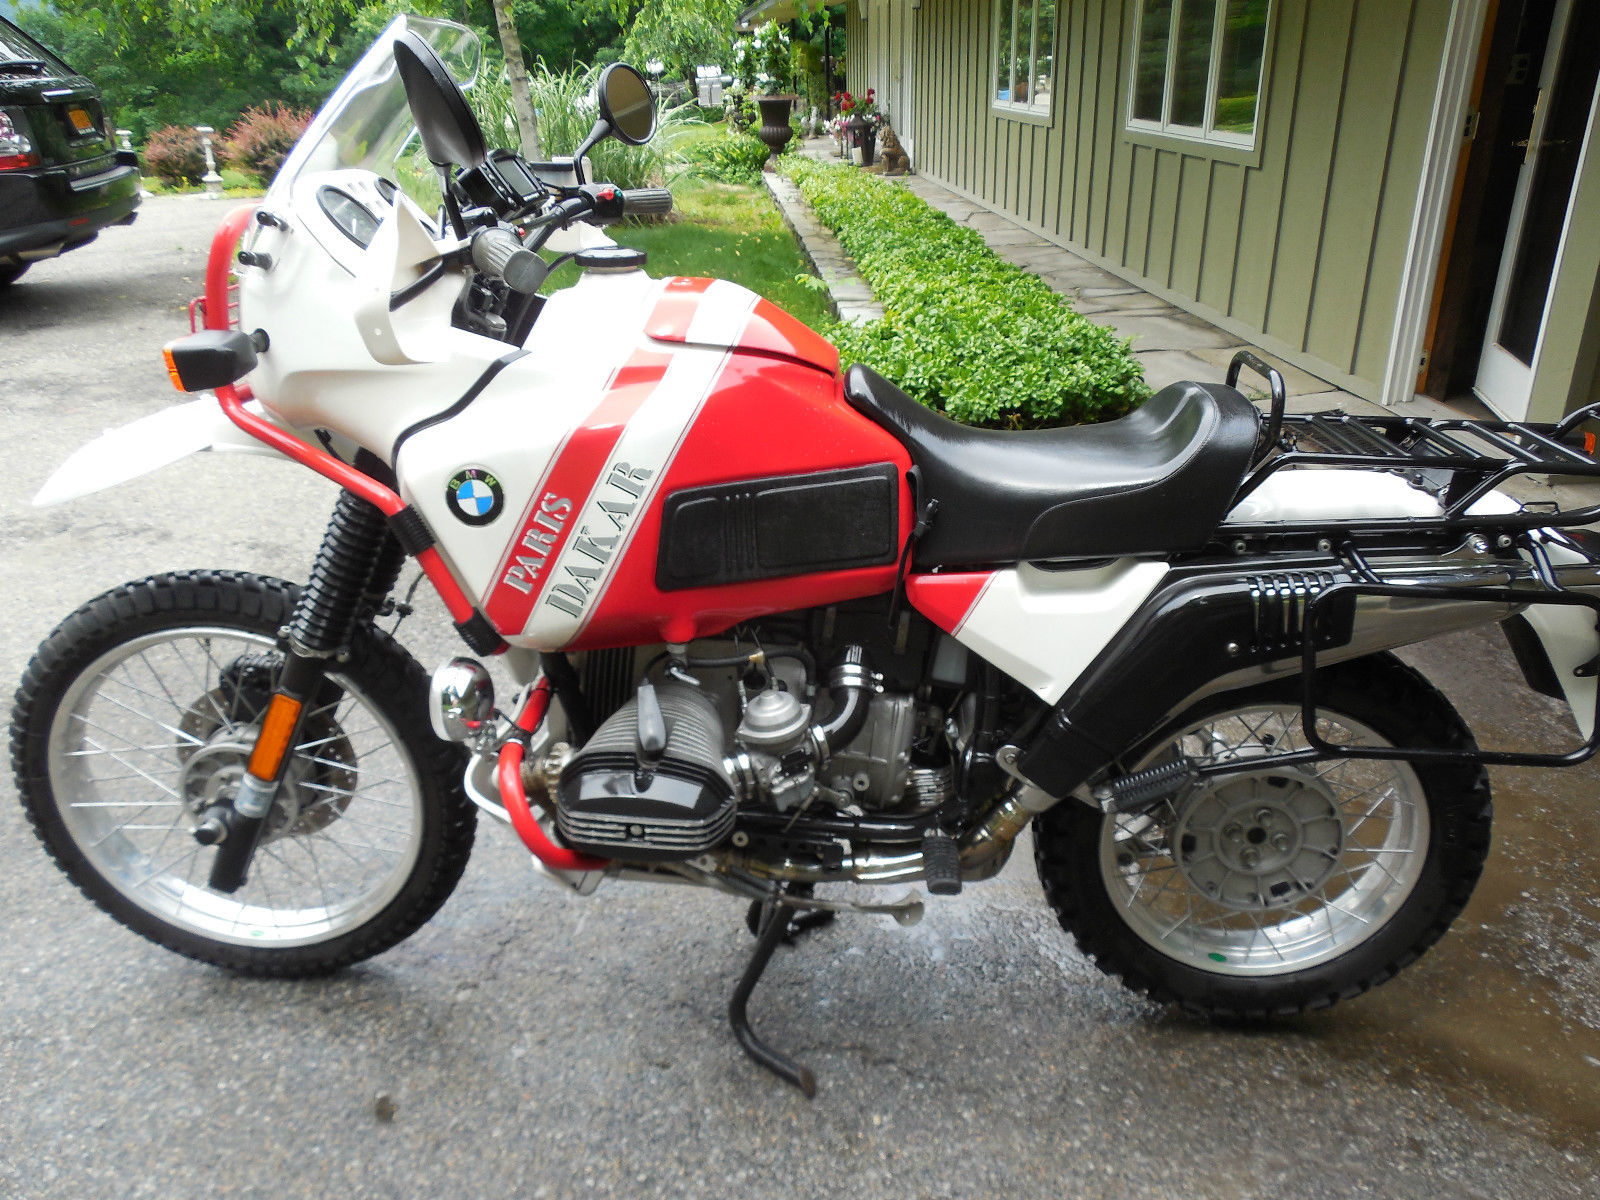 BMW R100GS Paris-Dakar images #77489